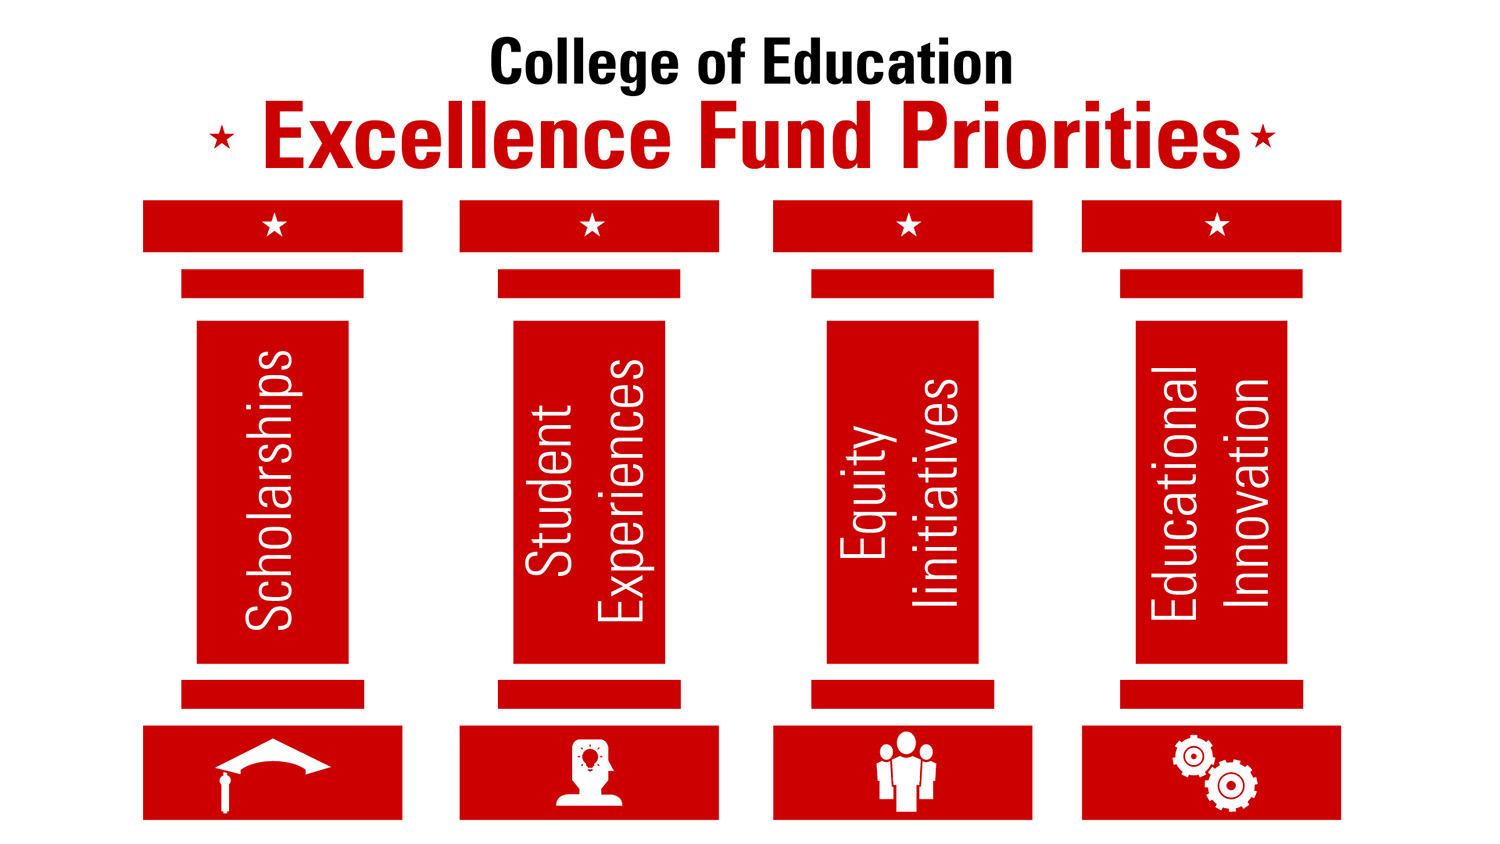 Excellence Fund Pillars